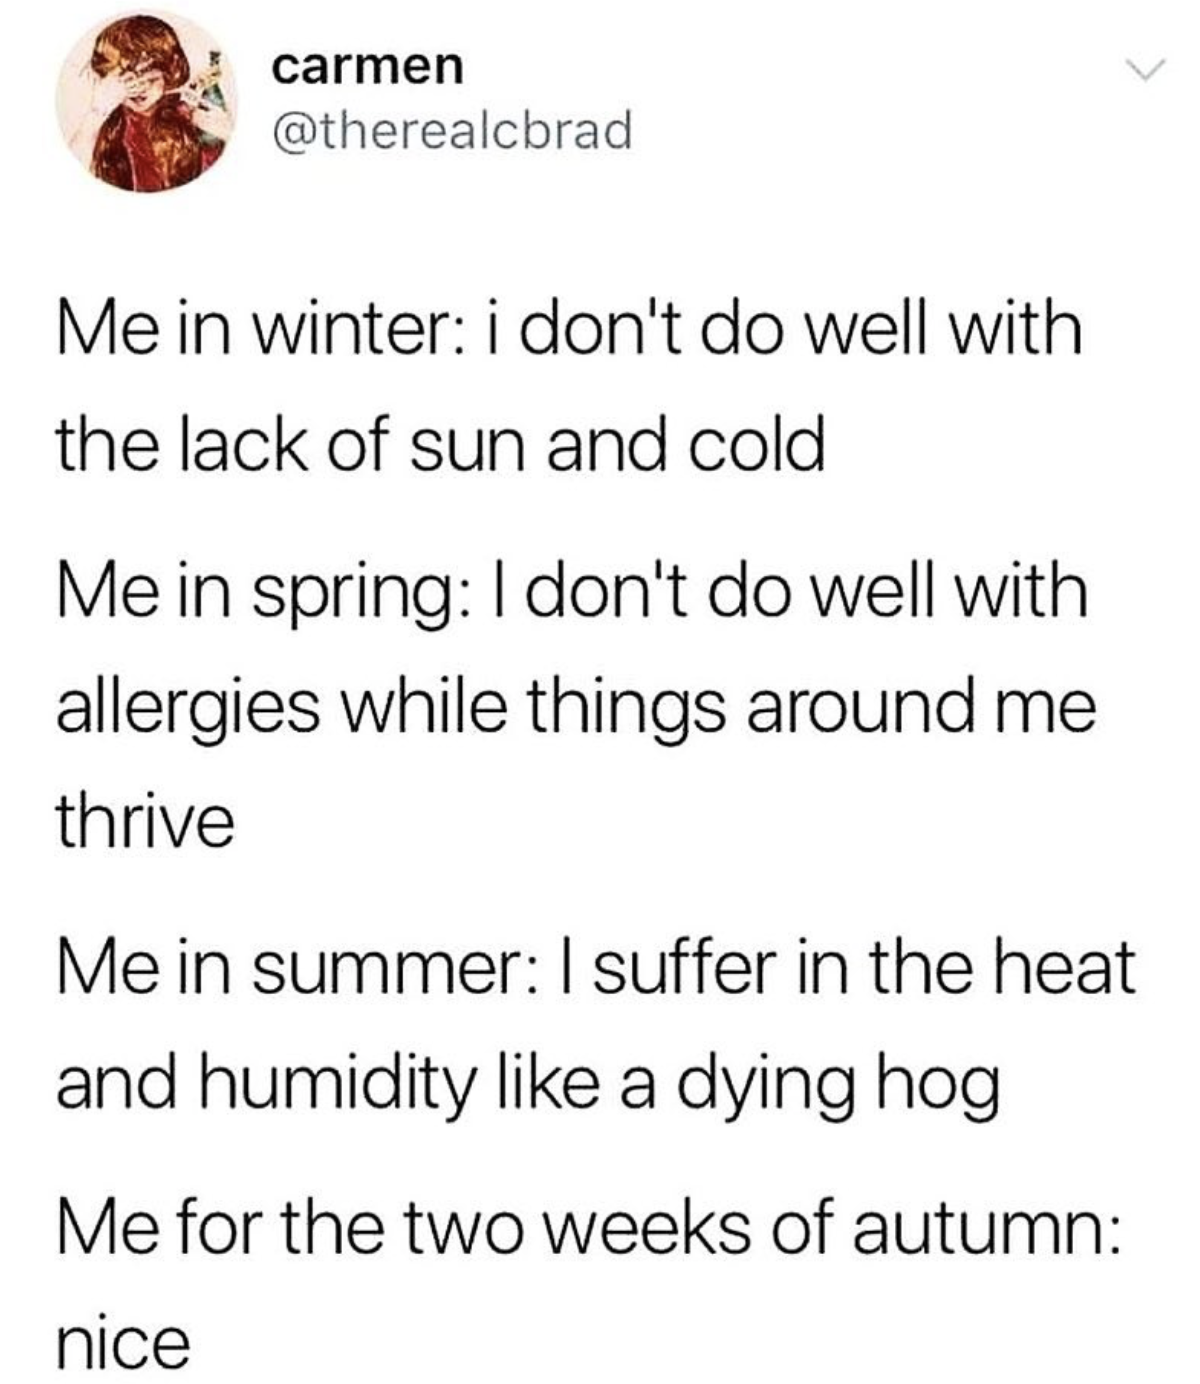 Me in winter: i don't do well with the lack of sun and cold